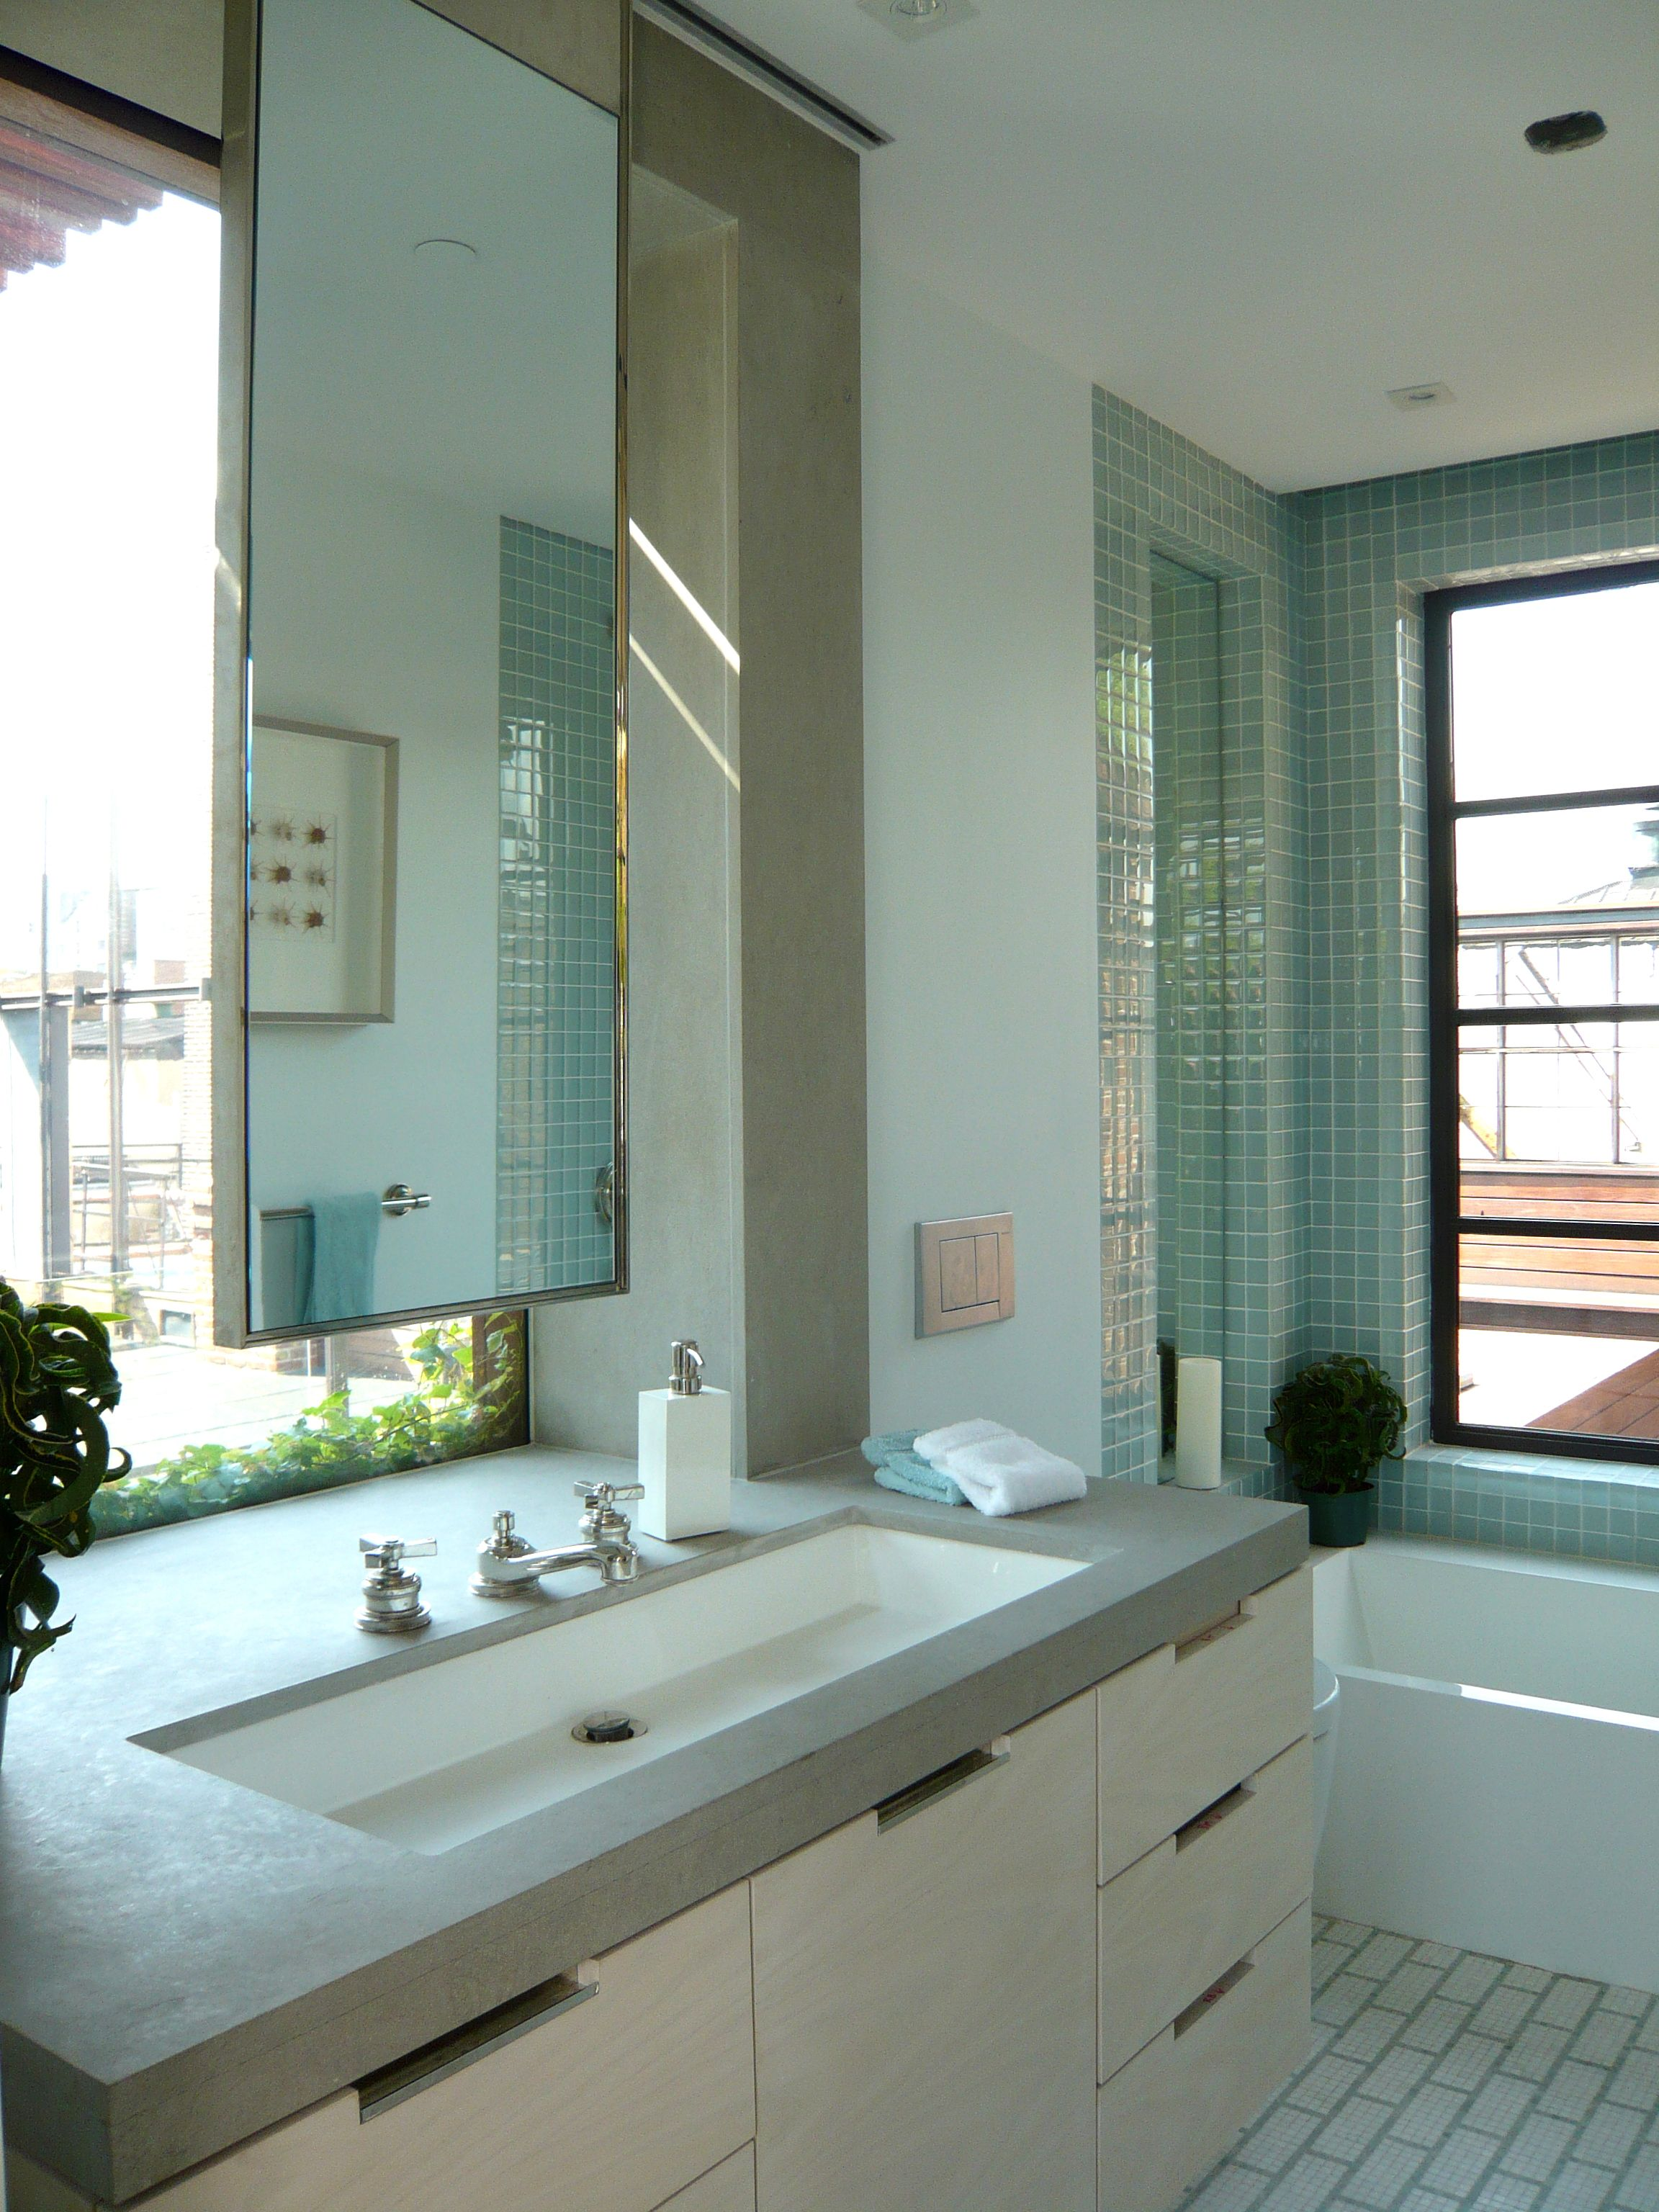 Loft Style Window Mirror Modern Manhattan Bathroom Stedila Design Sdi Bath